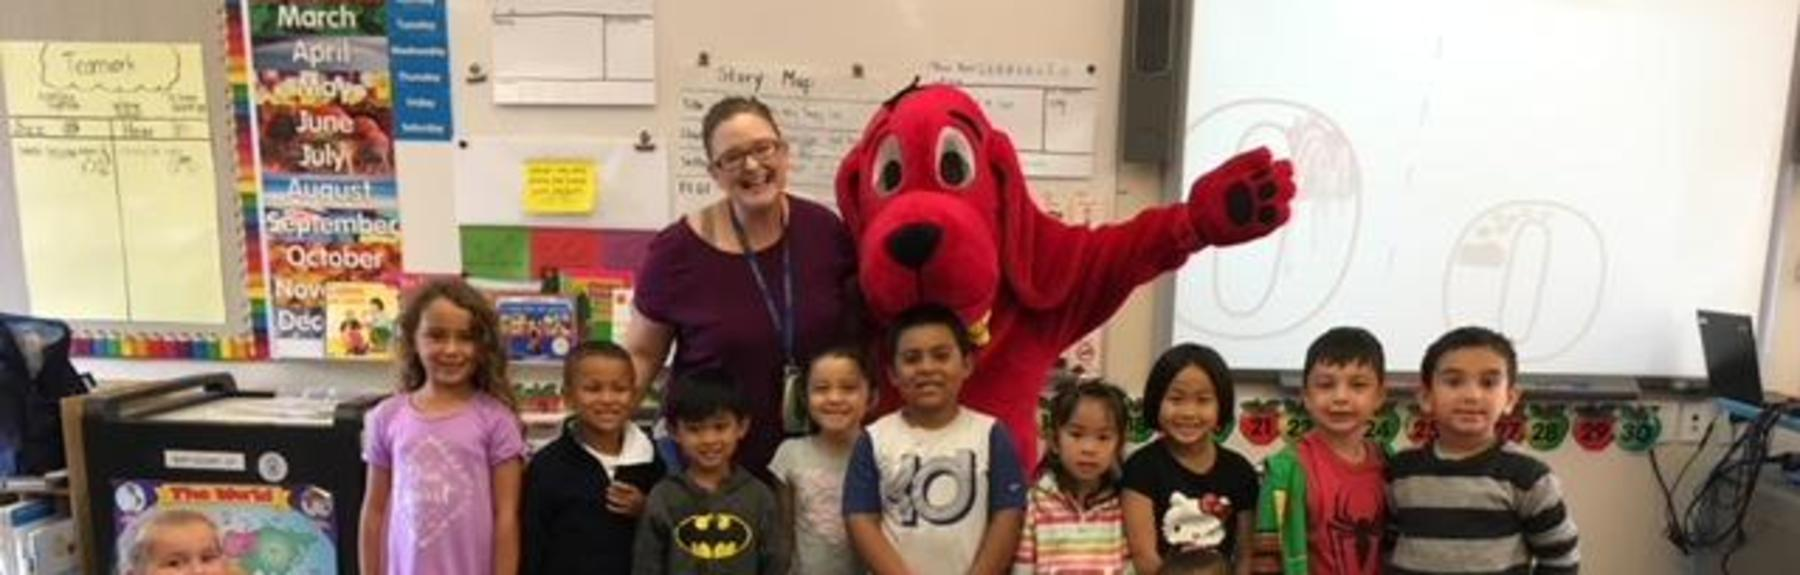 Students with Clifford